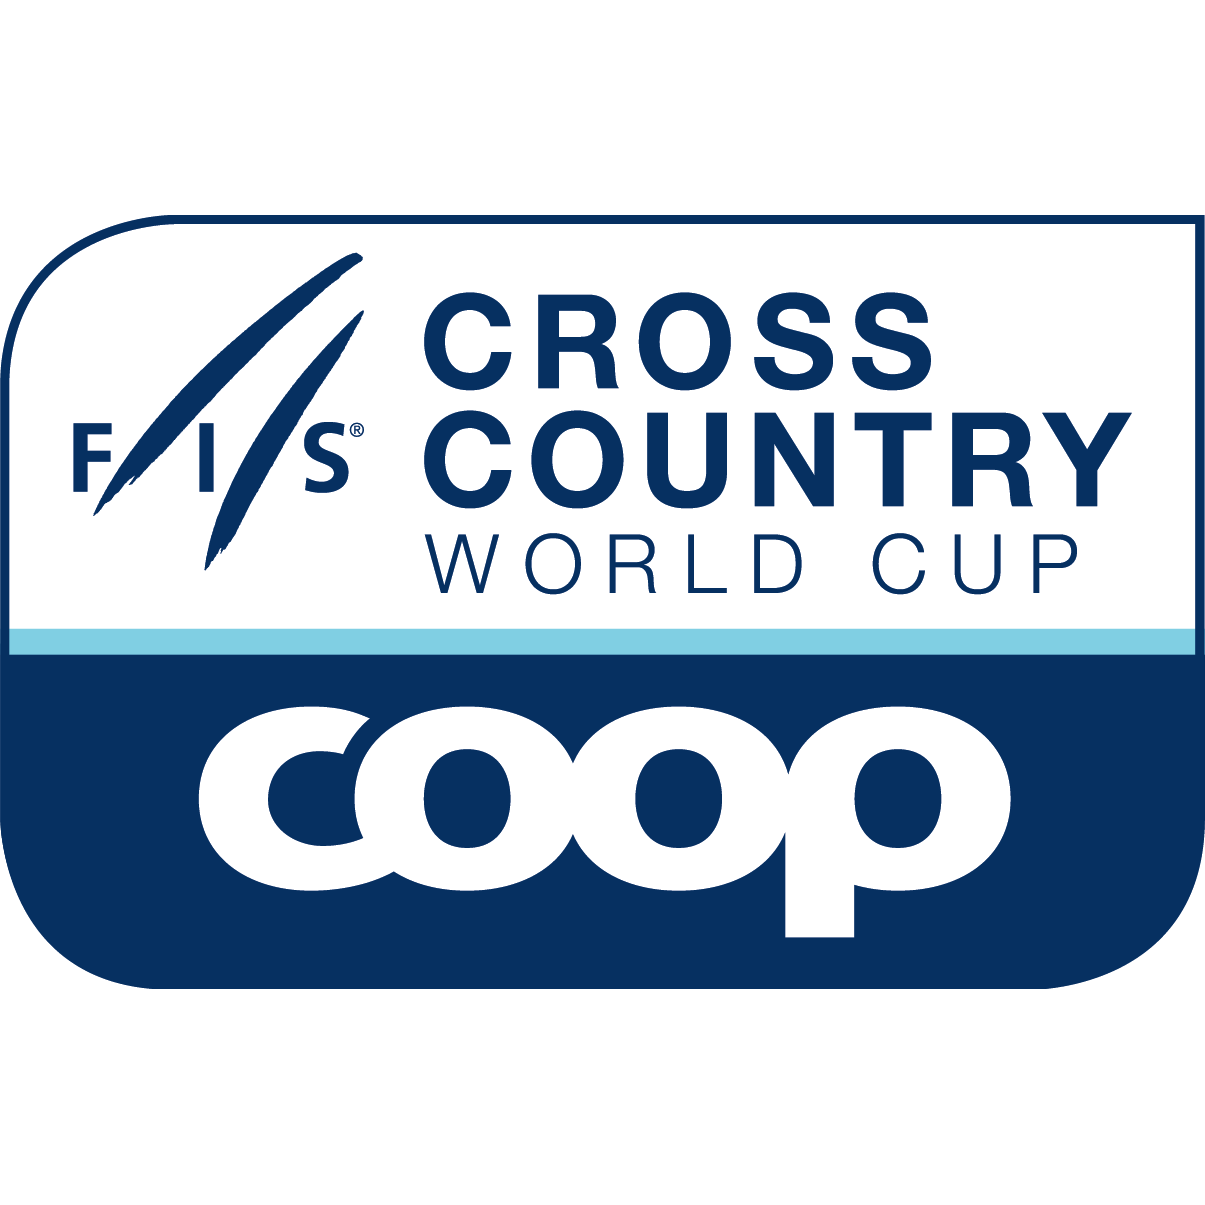 2017 FIS Cross Country World Cup